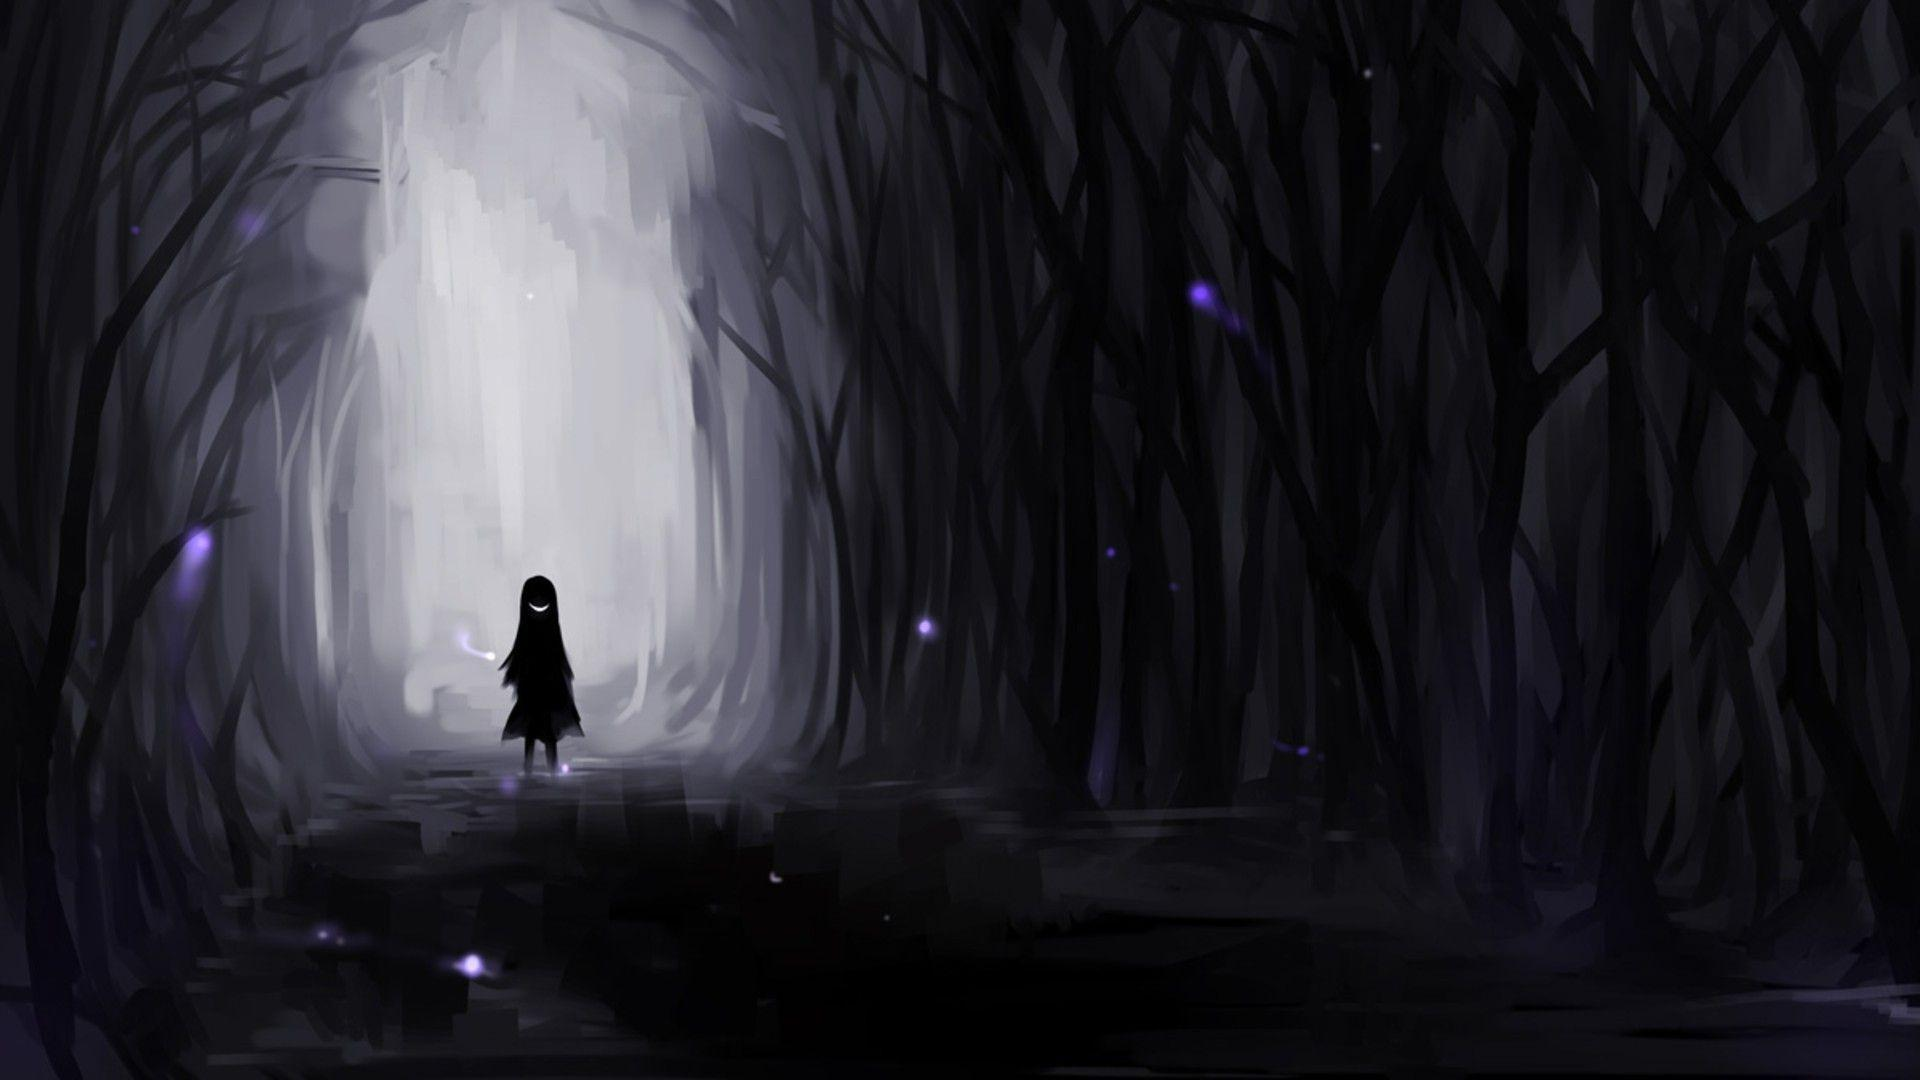 Dark Anime Wallpapers 14741 HD Wallpapers